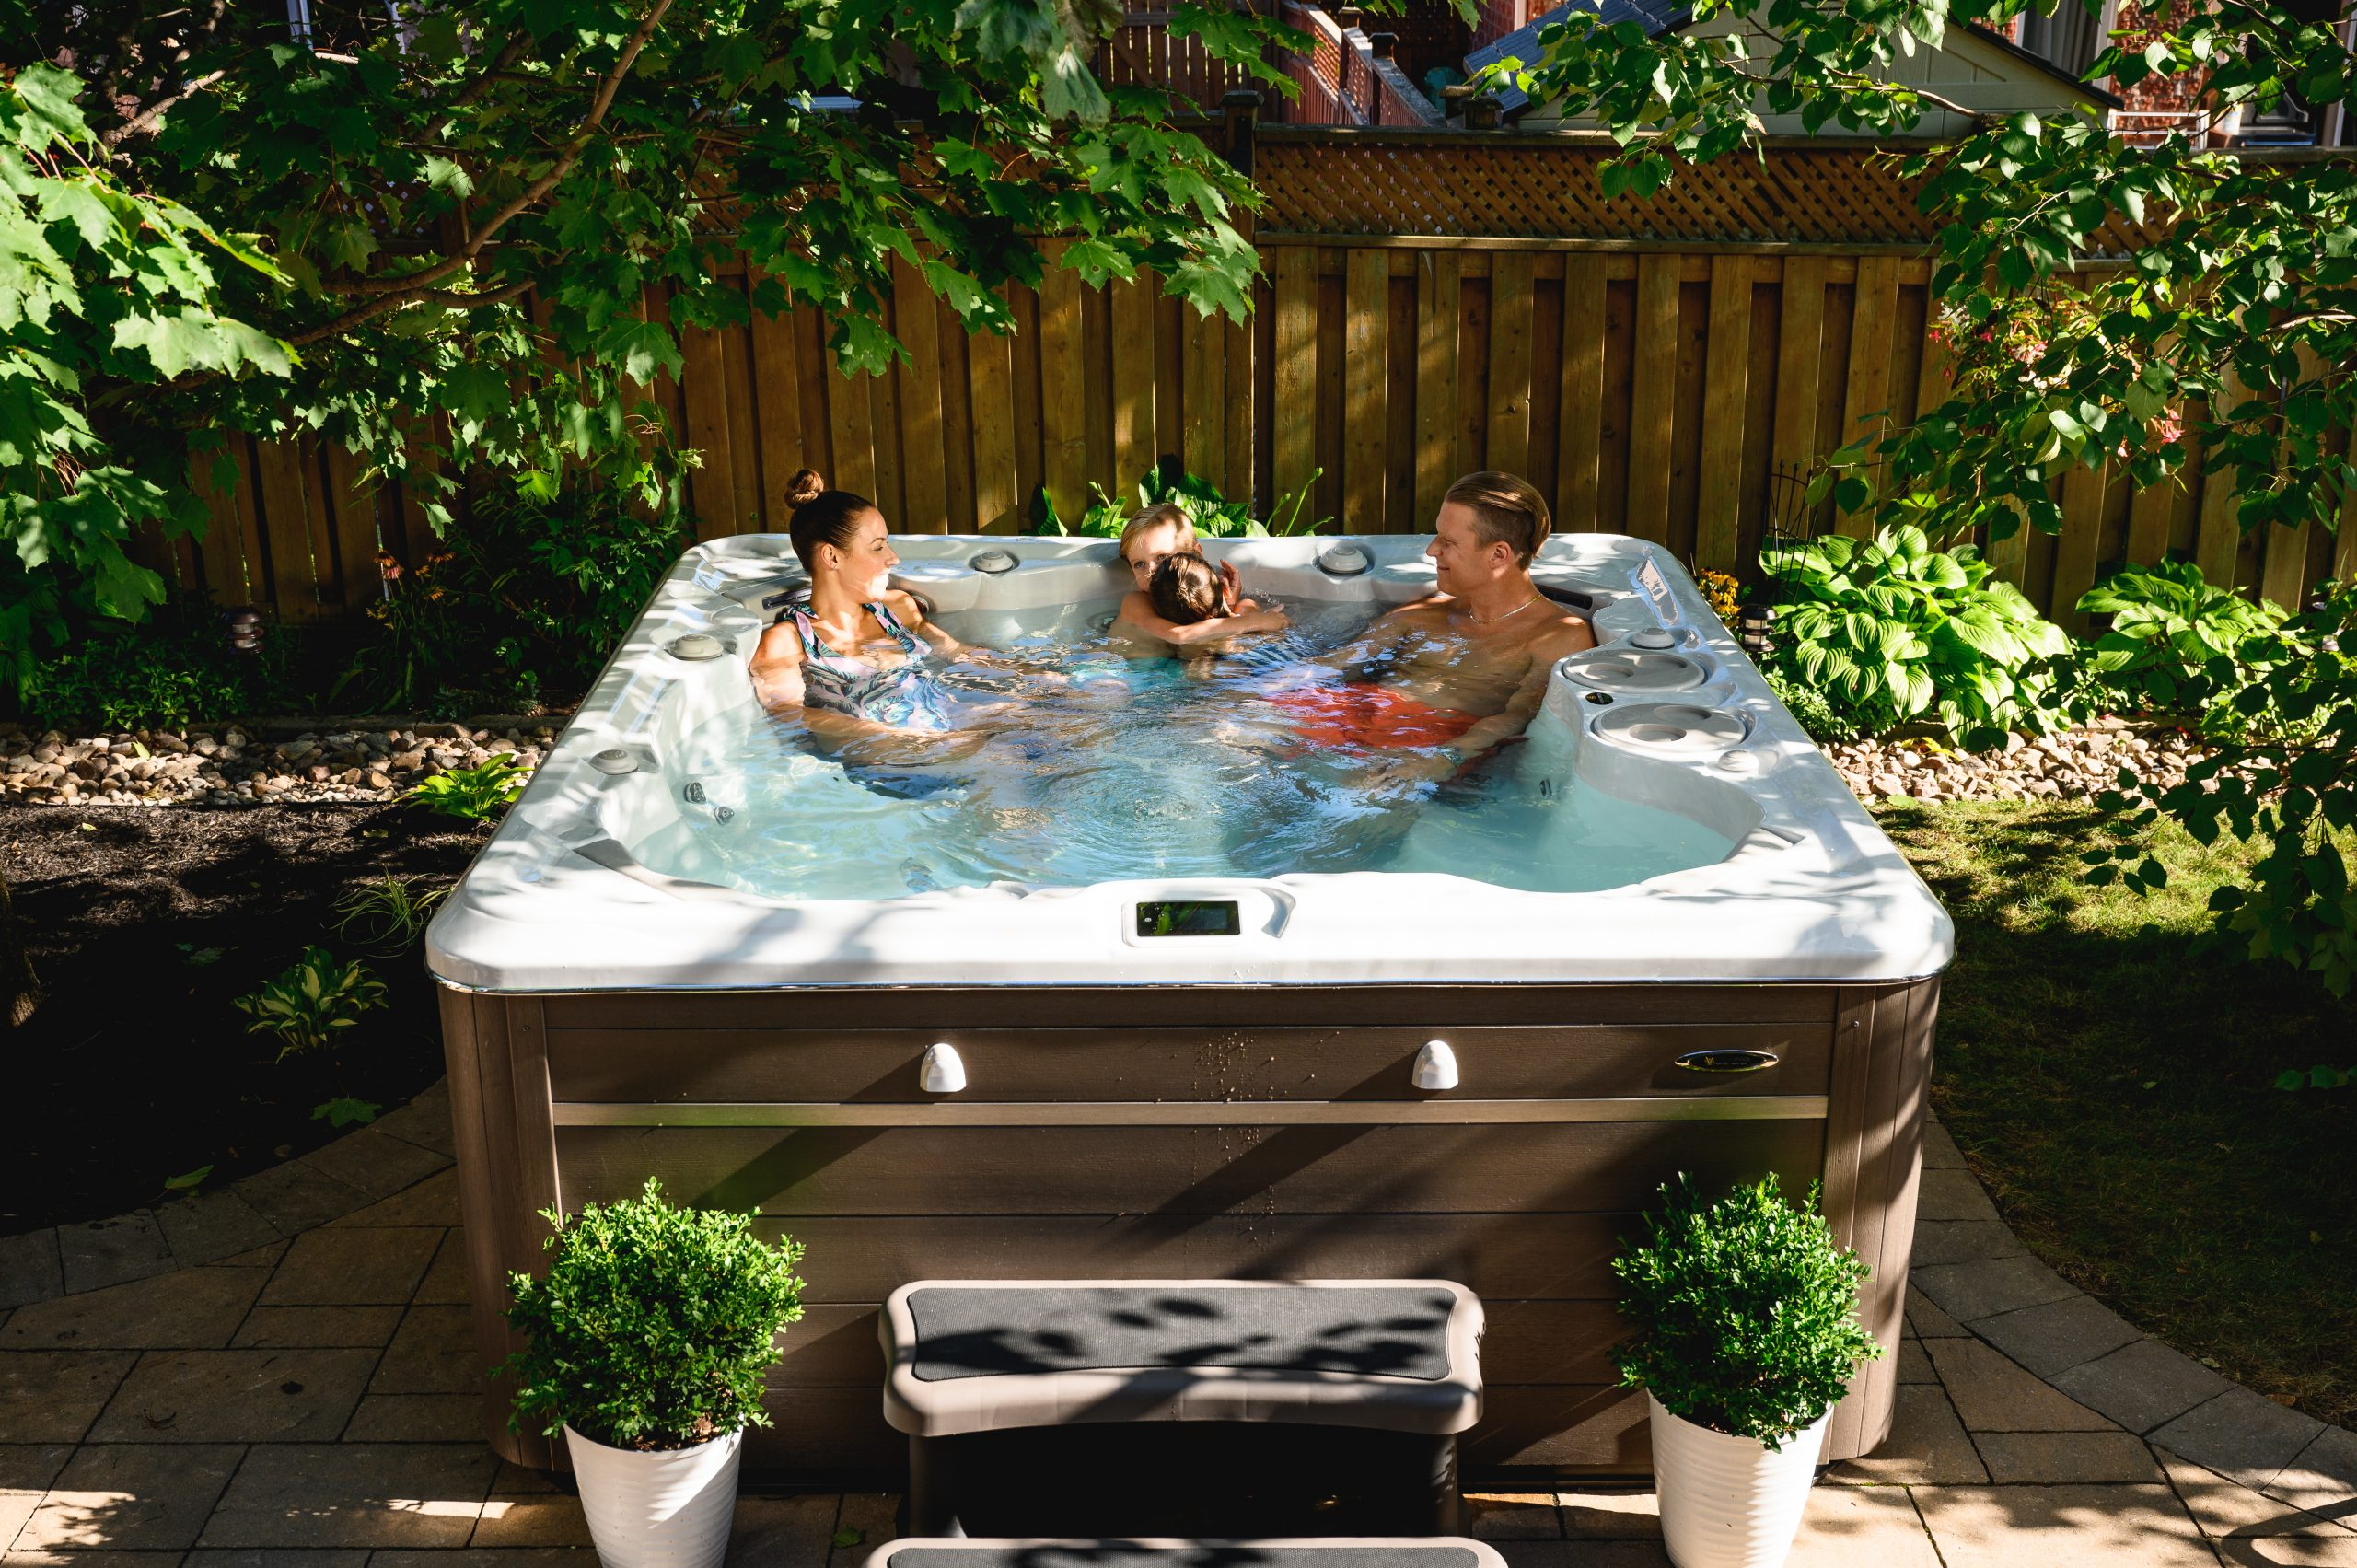 Hydropool lifestyle image, hot tub in garden with family in summer